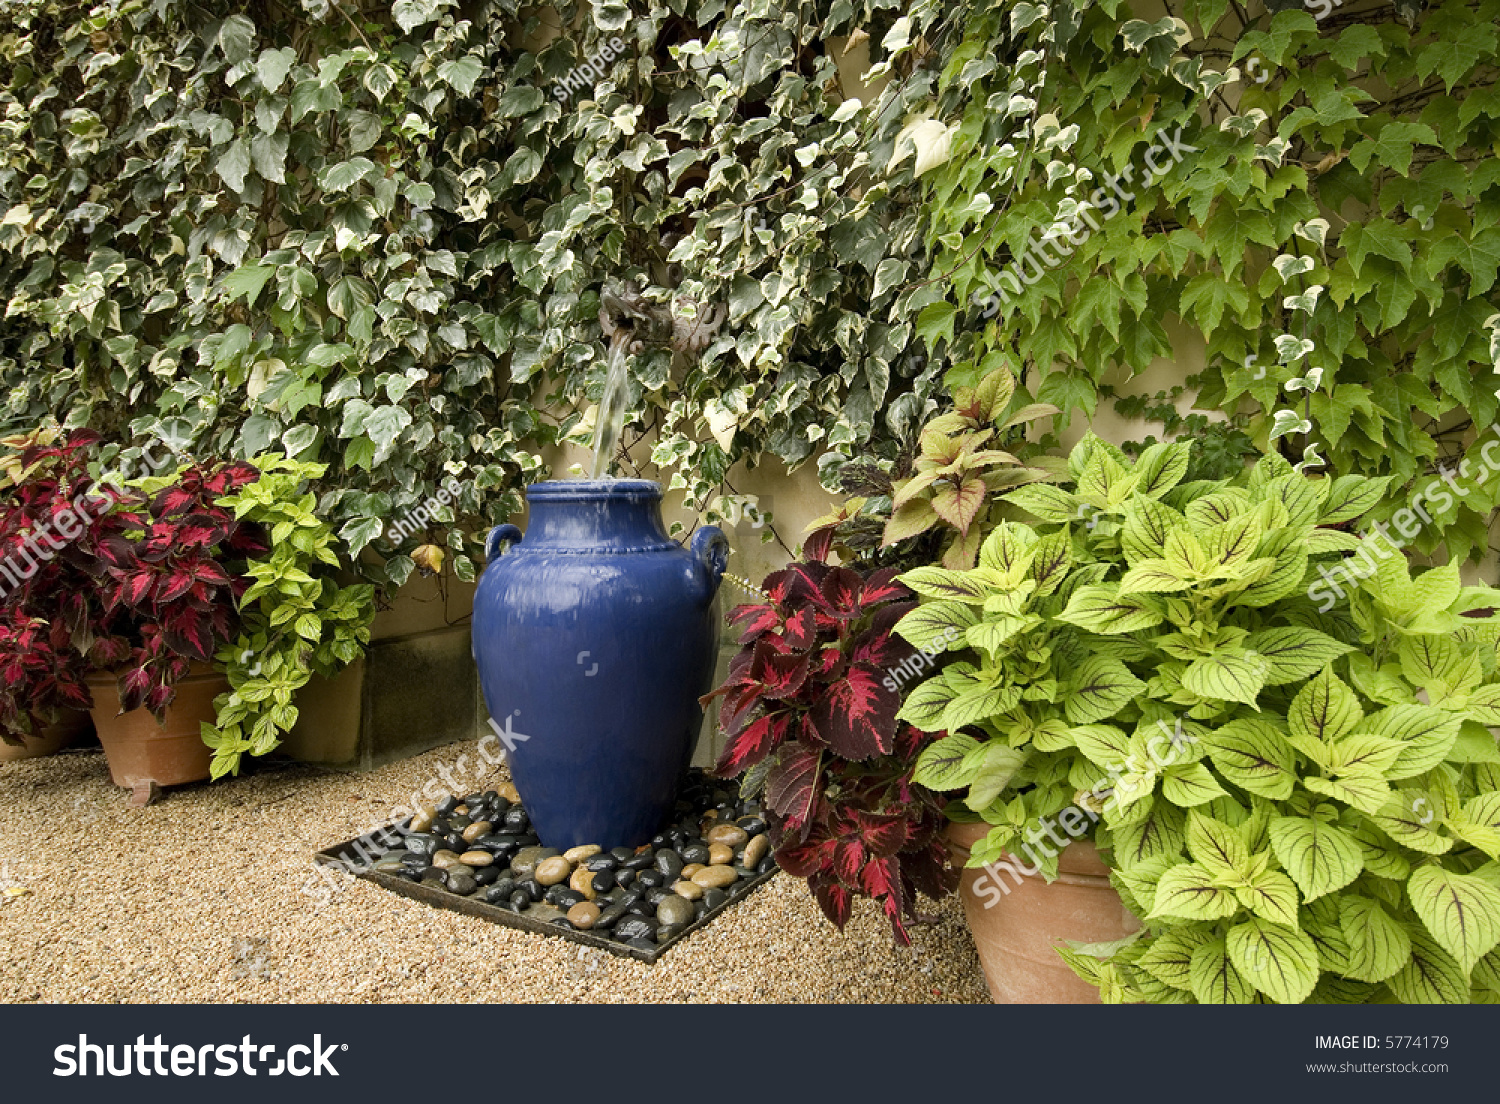 Garden Water Feature Using A Large Blue Pot Surrounded By Wall Of Ivy And Potted Plants Gravel